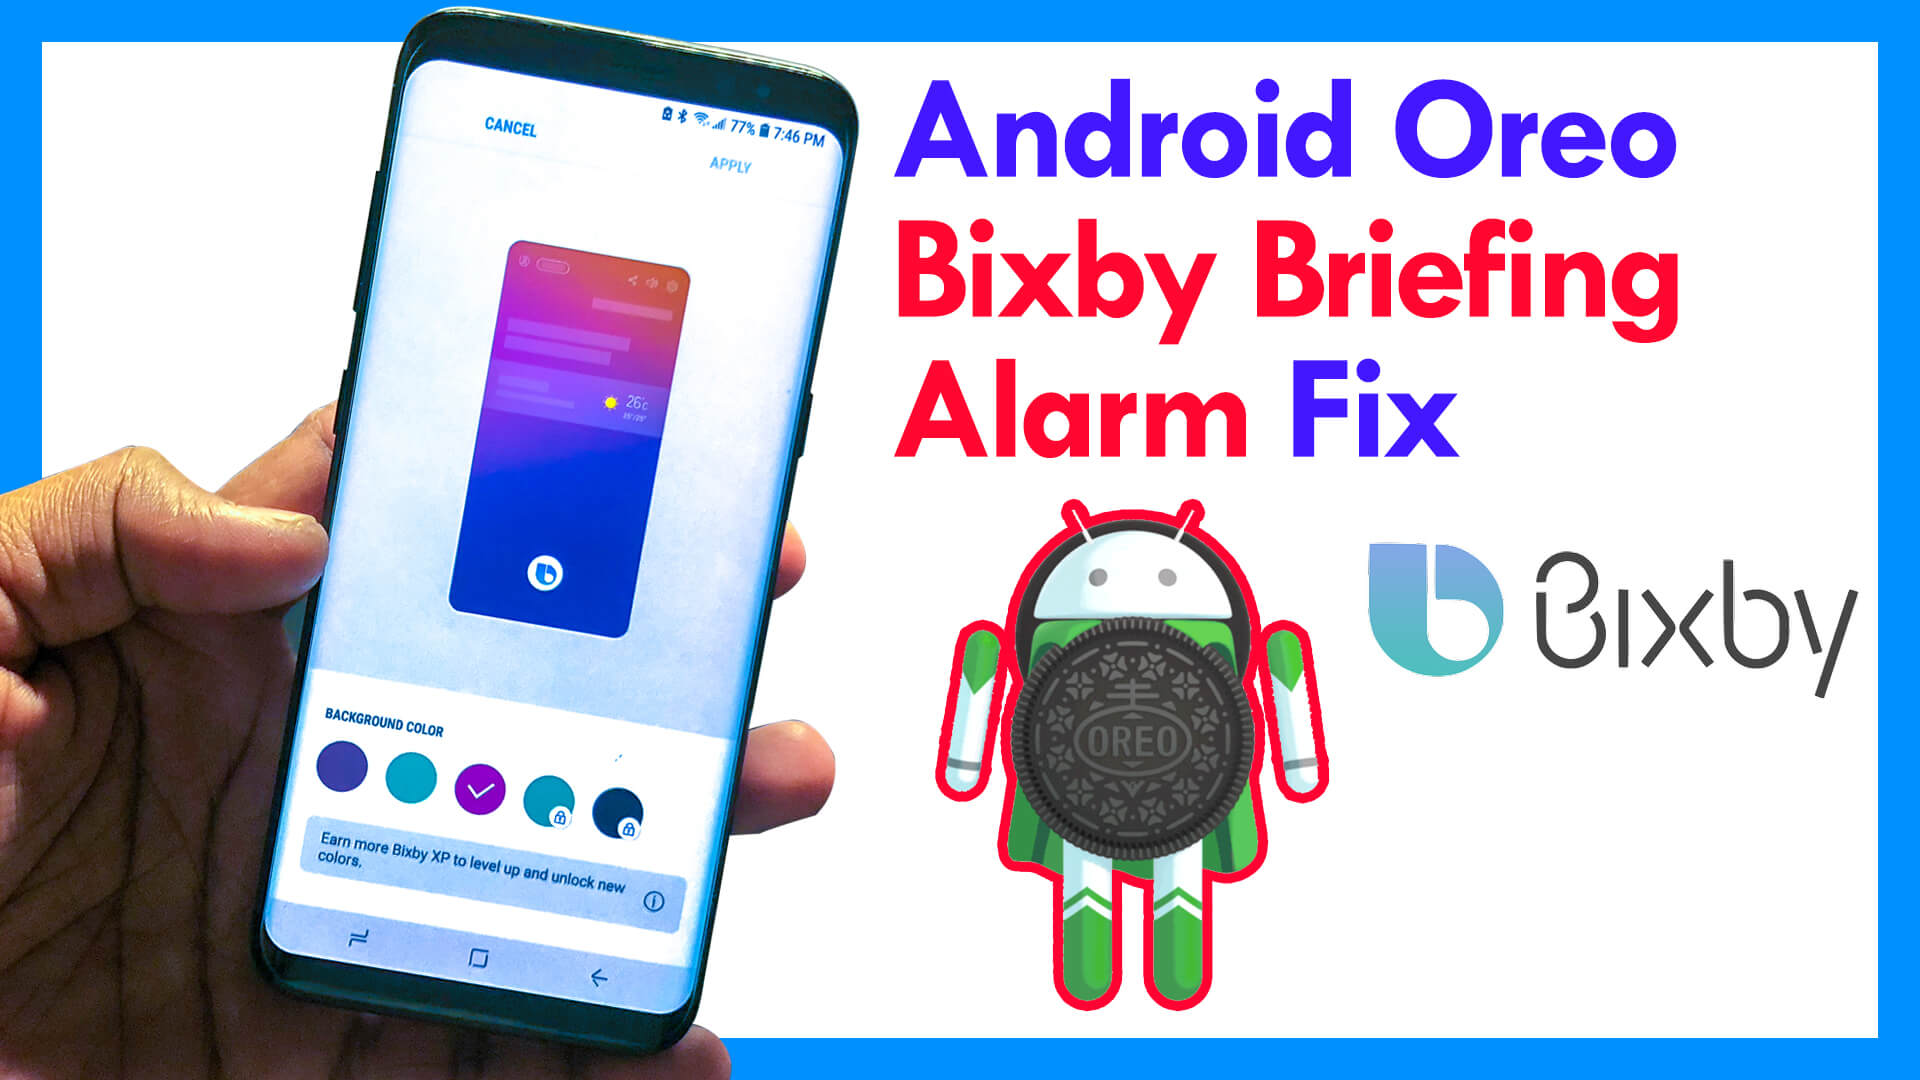 Fix Bixby Briefing Alarm Missing in Oreo Update - Galaxy S8